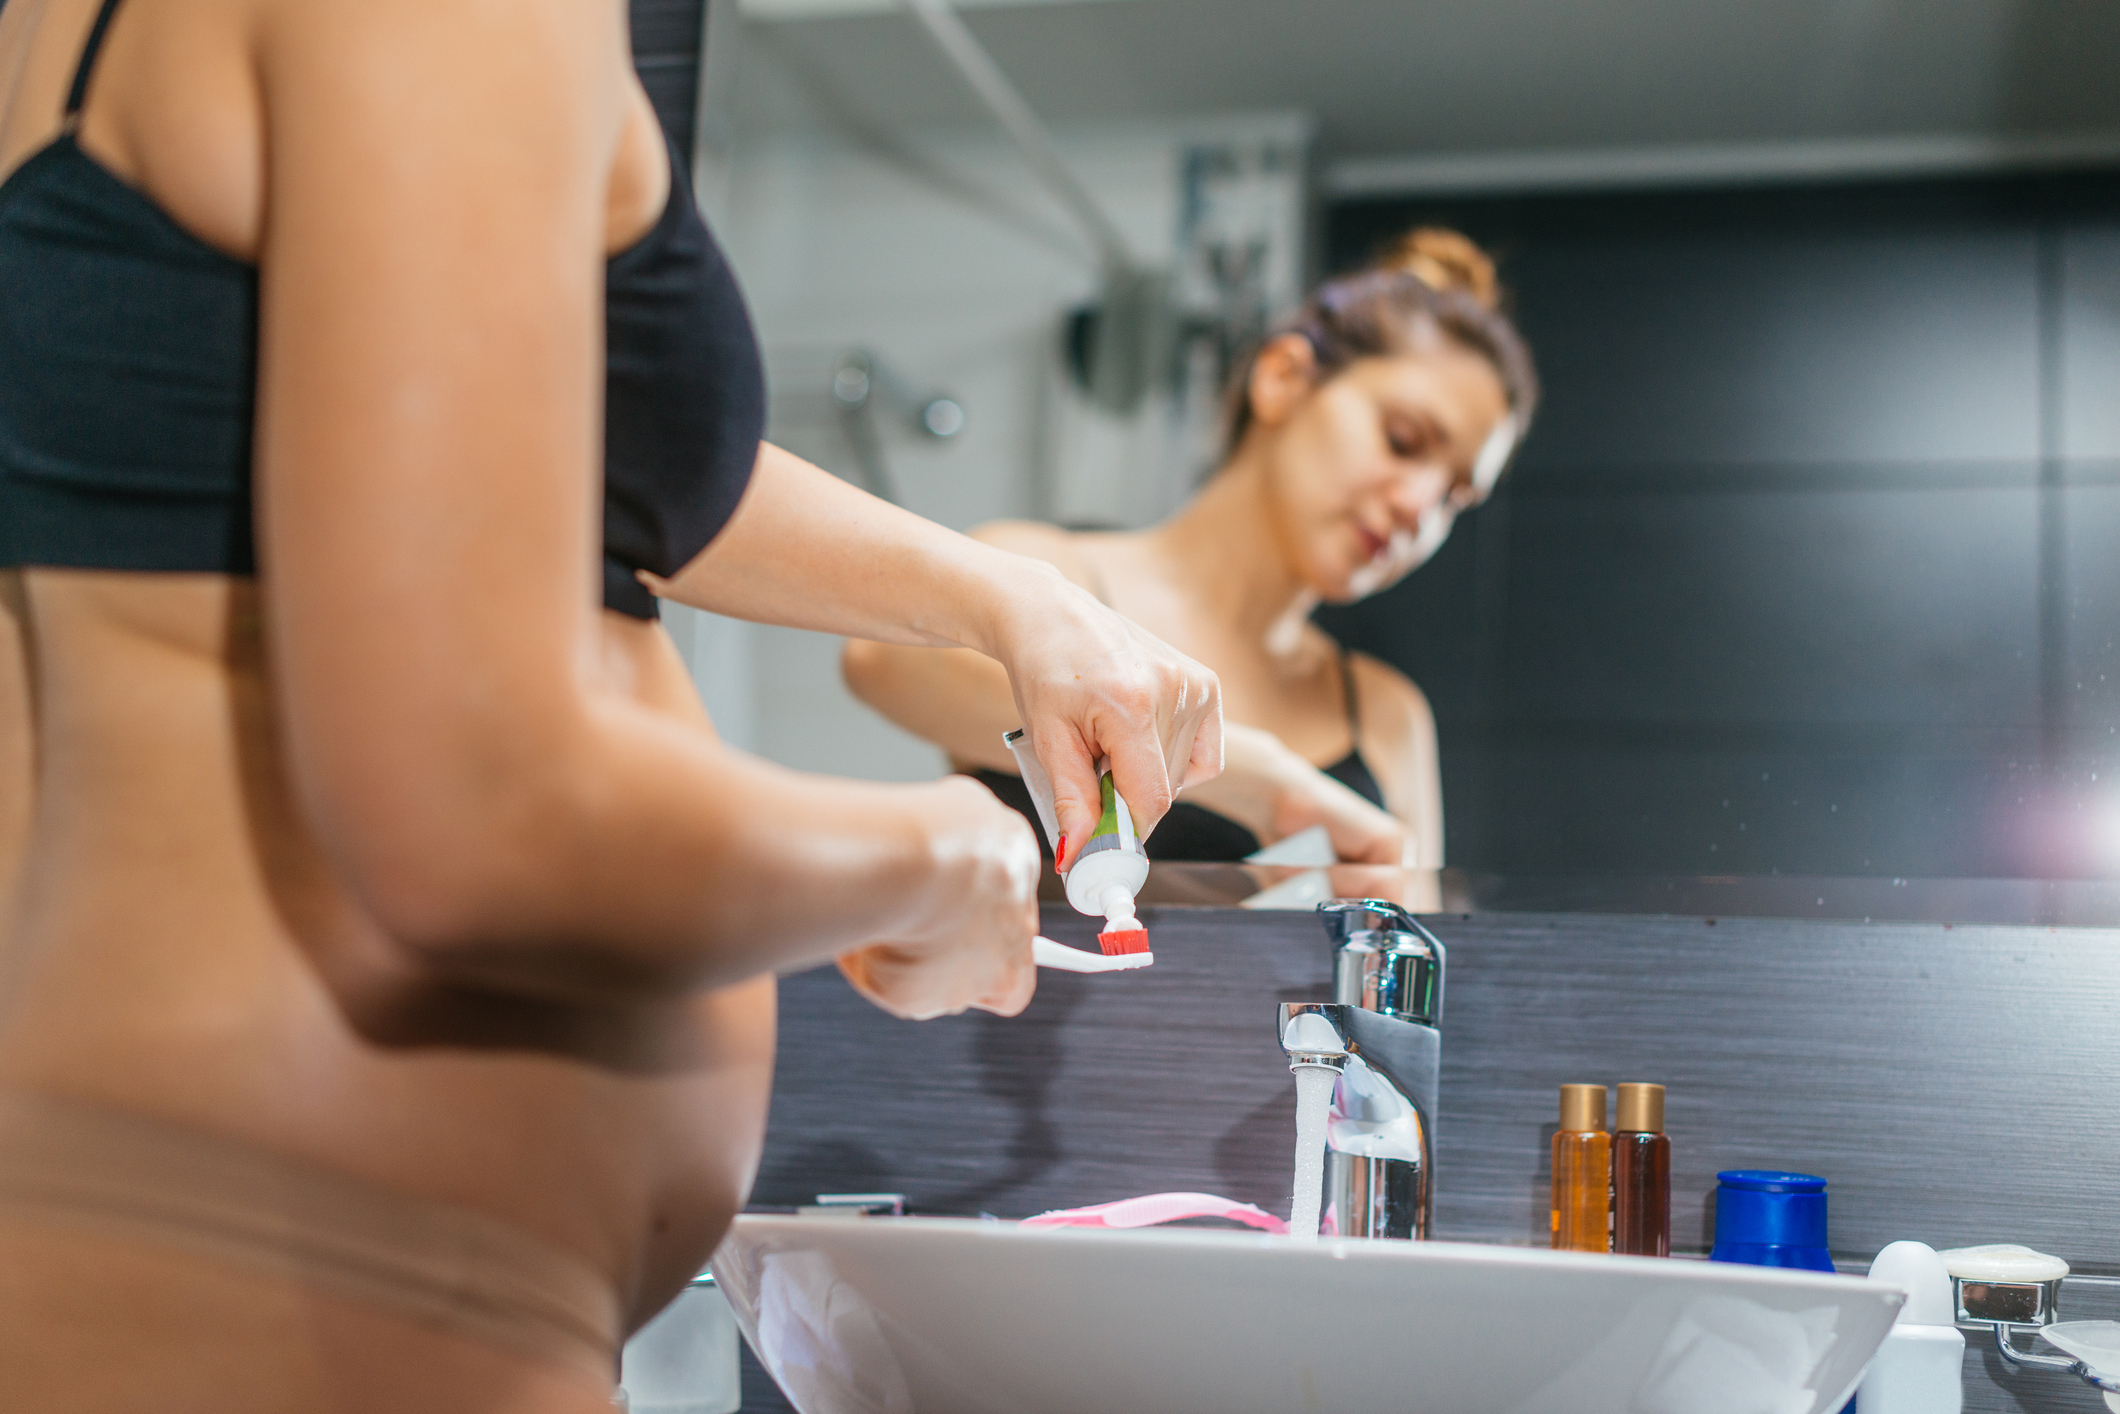 Pregnant Woman In Bathroom Brushing Her Teeth